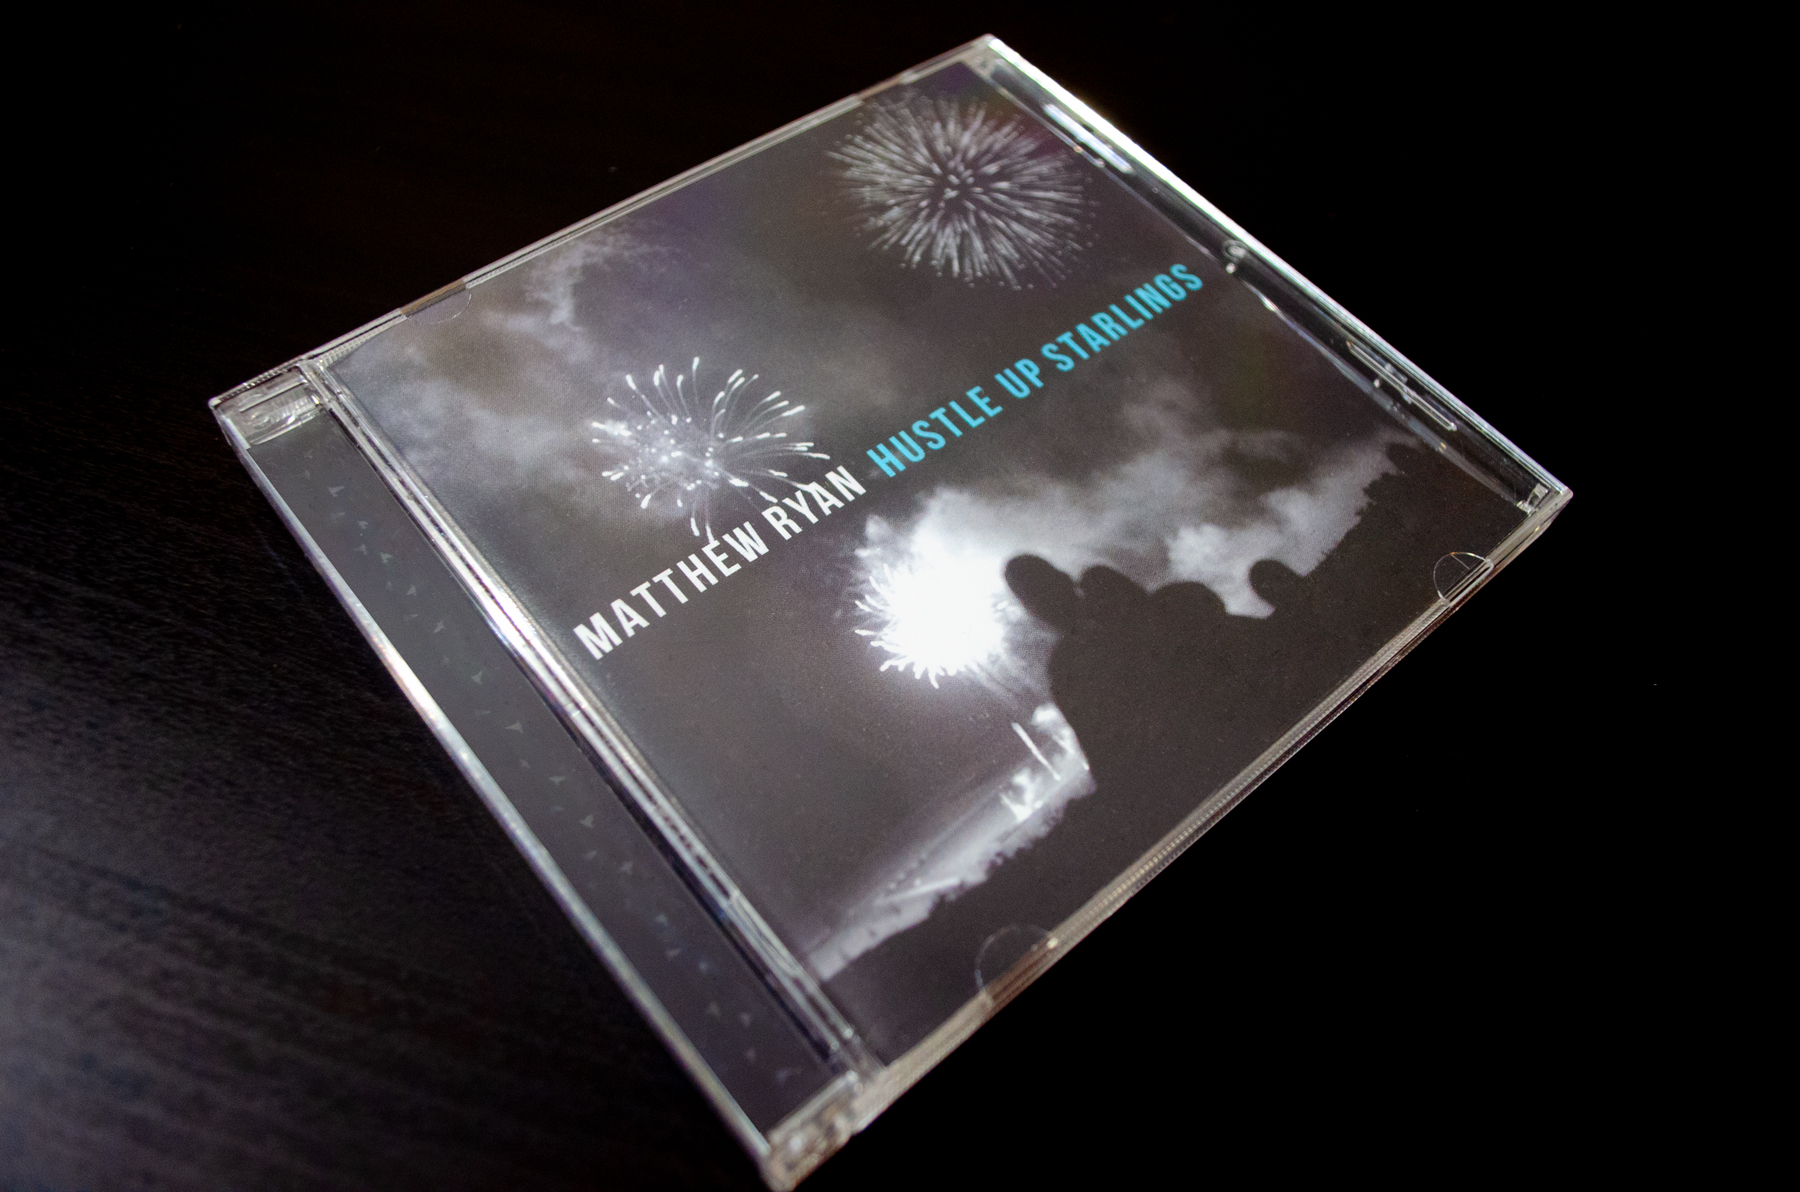 Matthew Ryan Hustle Up Starlings Cd Jewel Case Cover